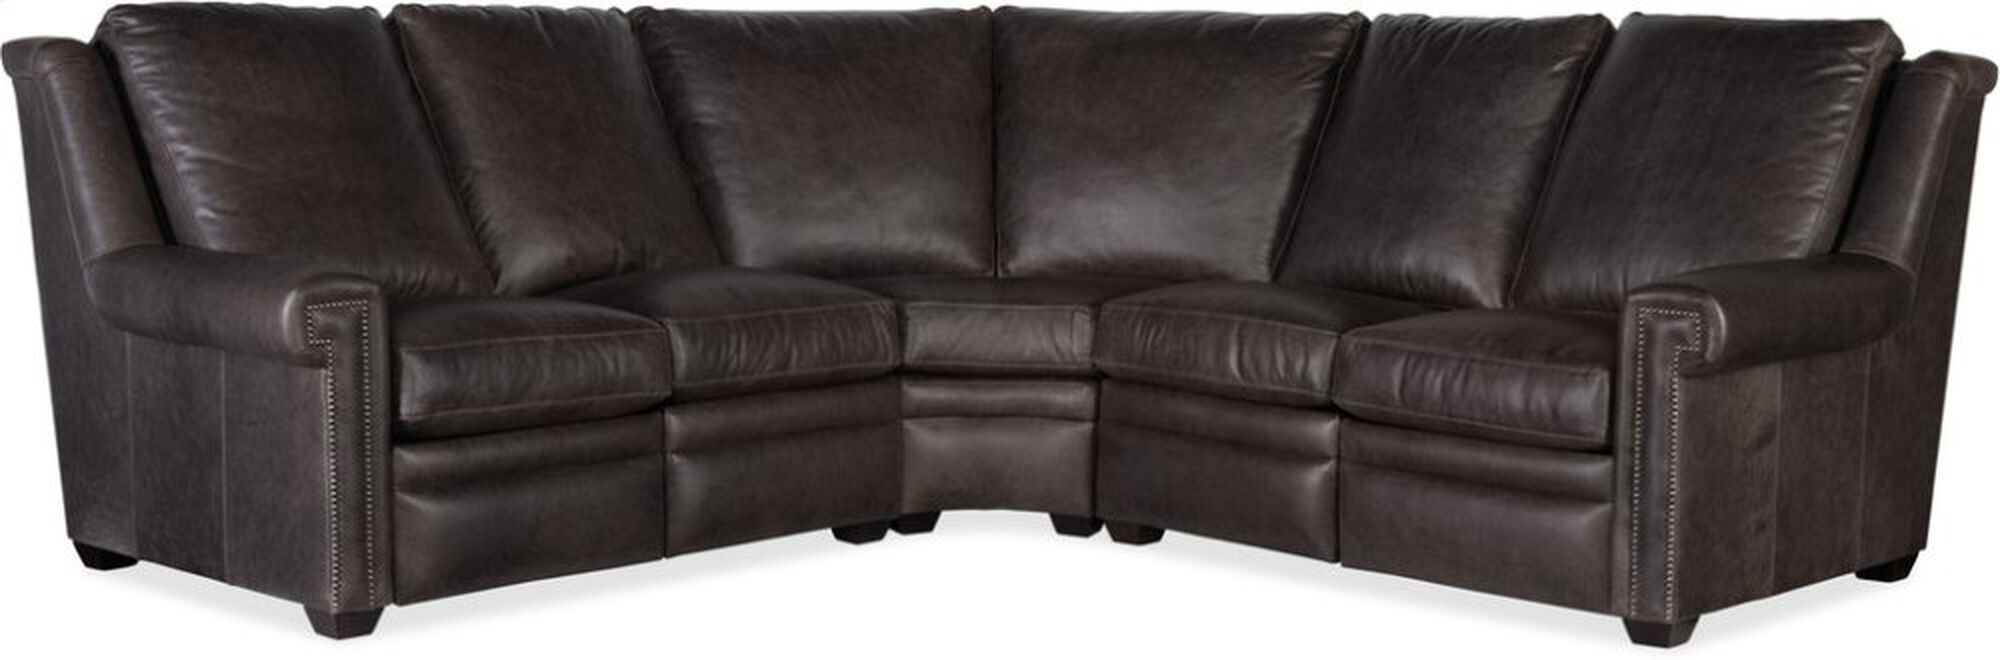 Bradington Young Santori Laf Loveseat Recline At Arm W Articulating Hr 966 55 Mathis Brothers Furniture